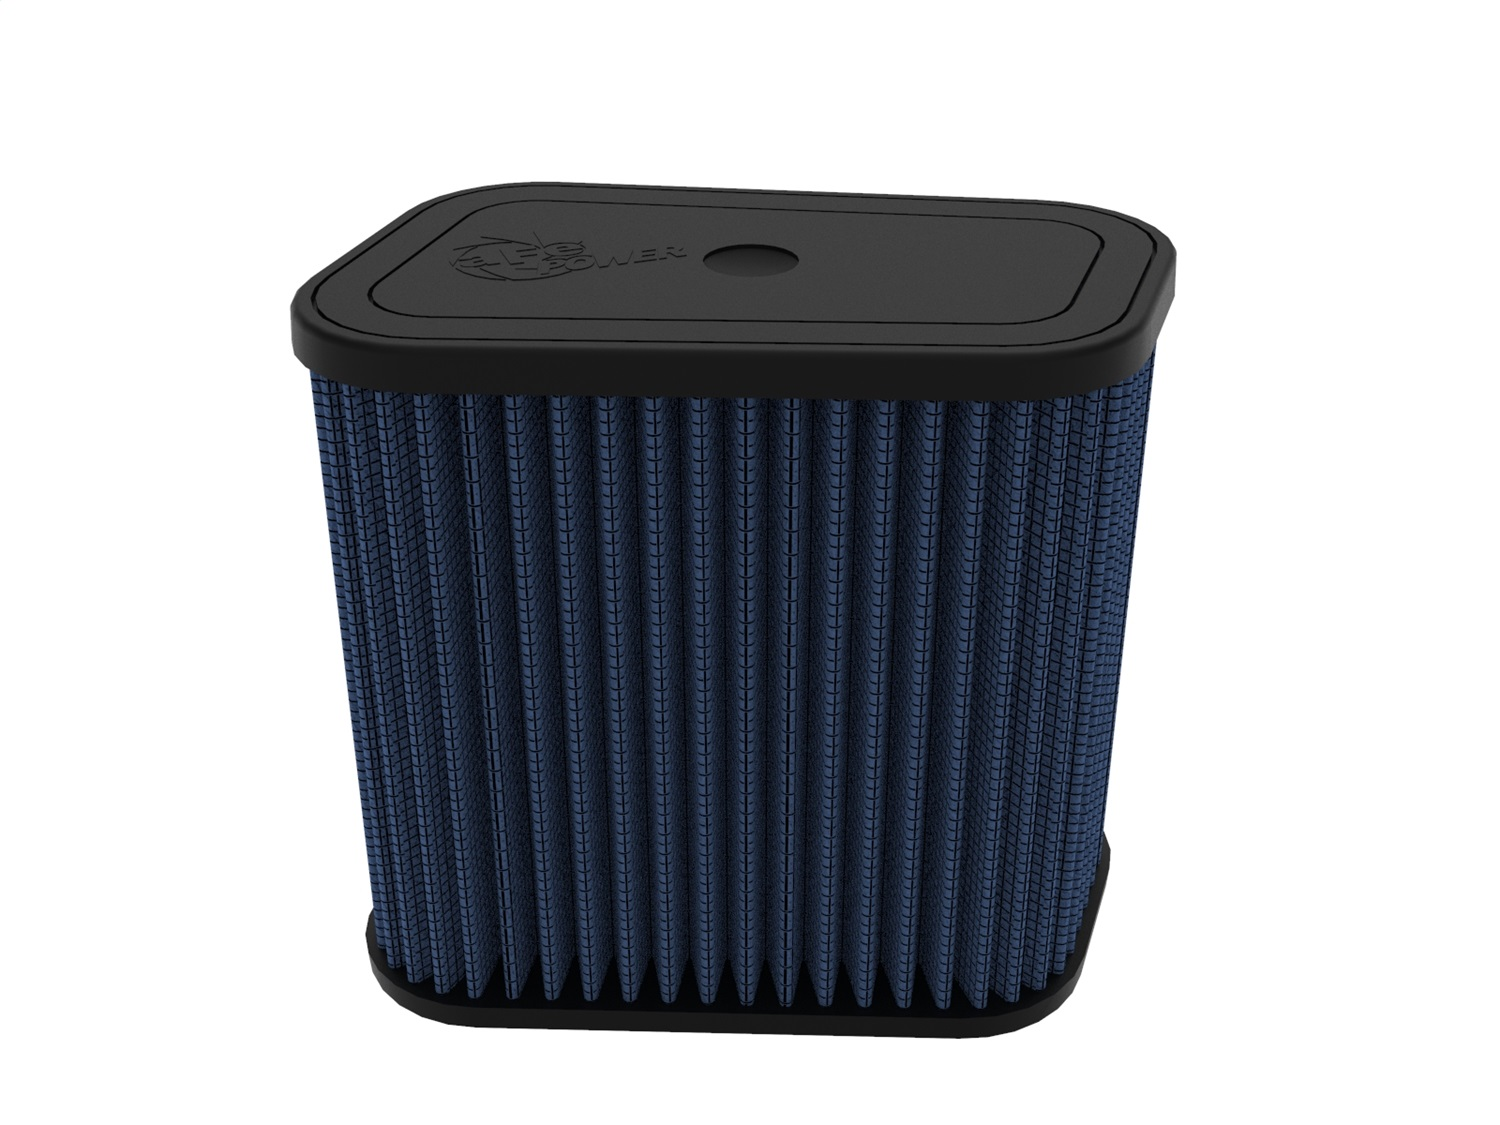 aFe Power 10-10116 Magnum FLOW Pro 5R OE Replacement Air Filter Fits 08-09 M3